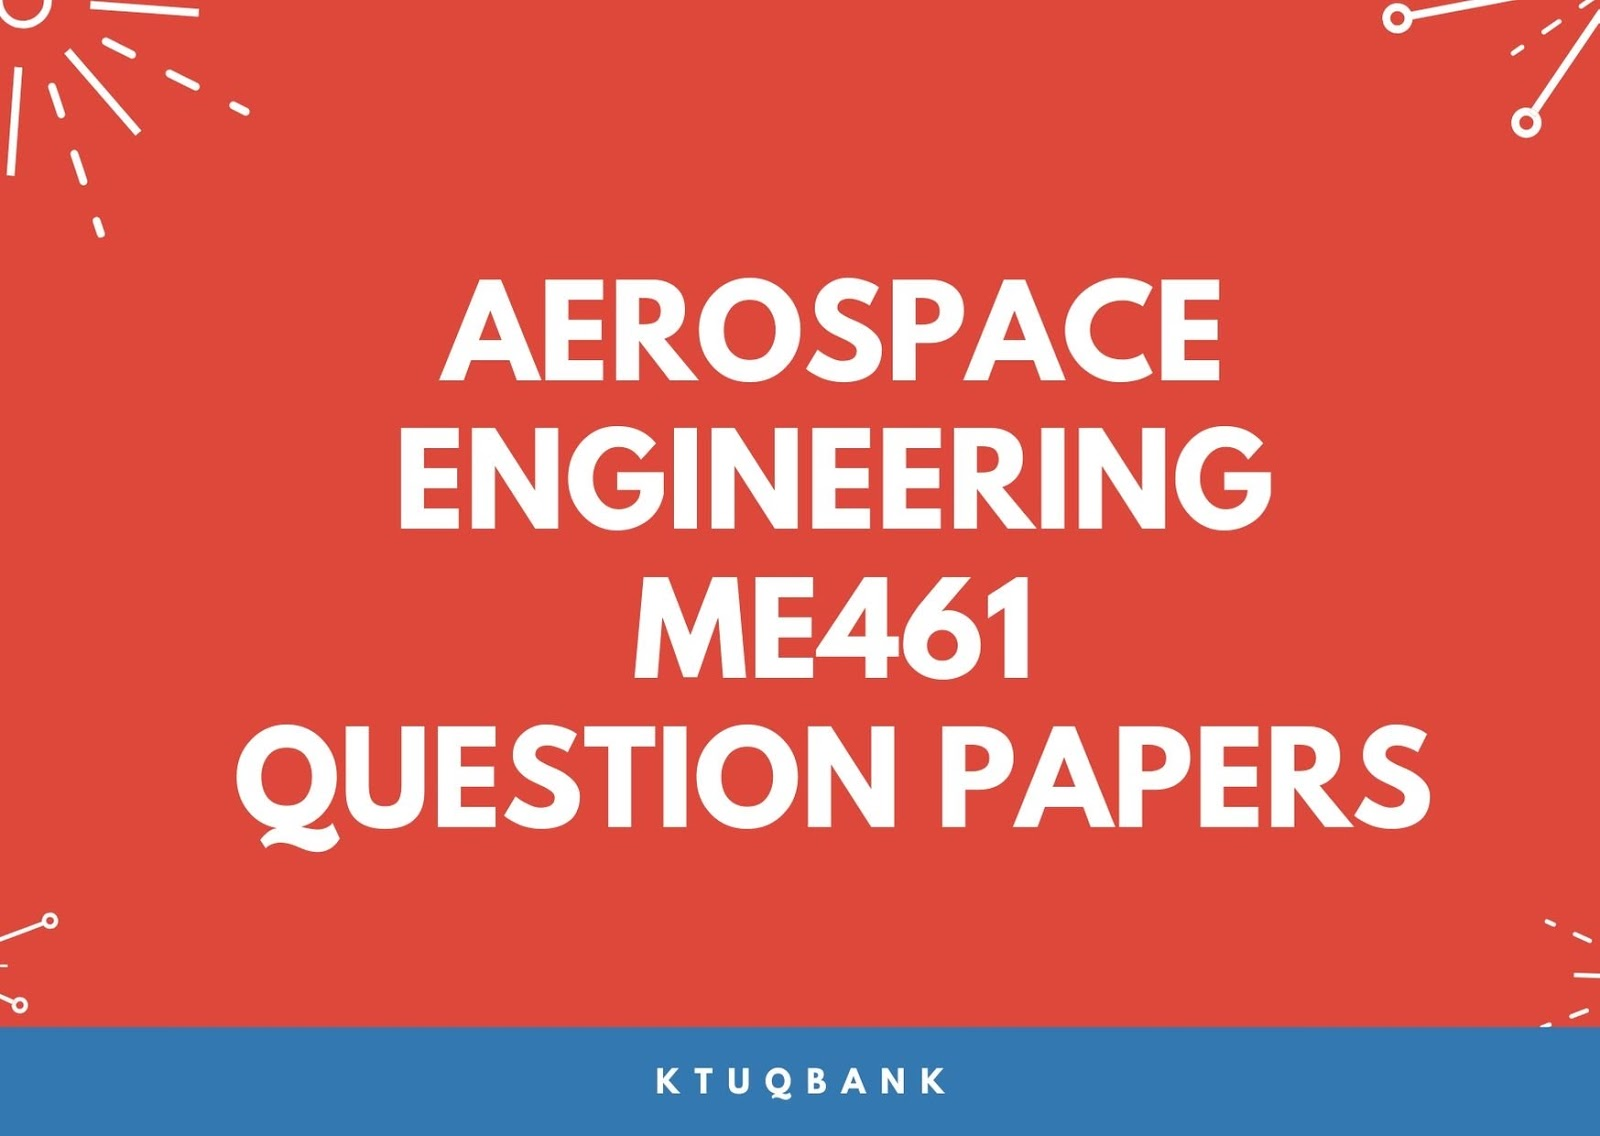 Aerospace Engineering | ME461 | Question Papers (2015 batch)